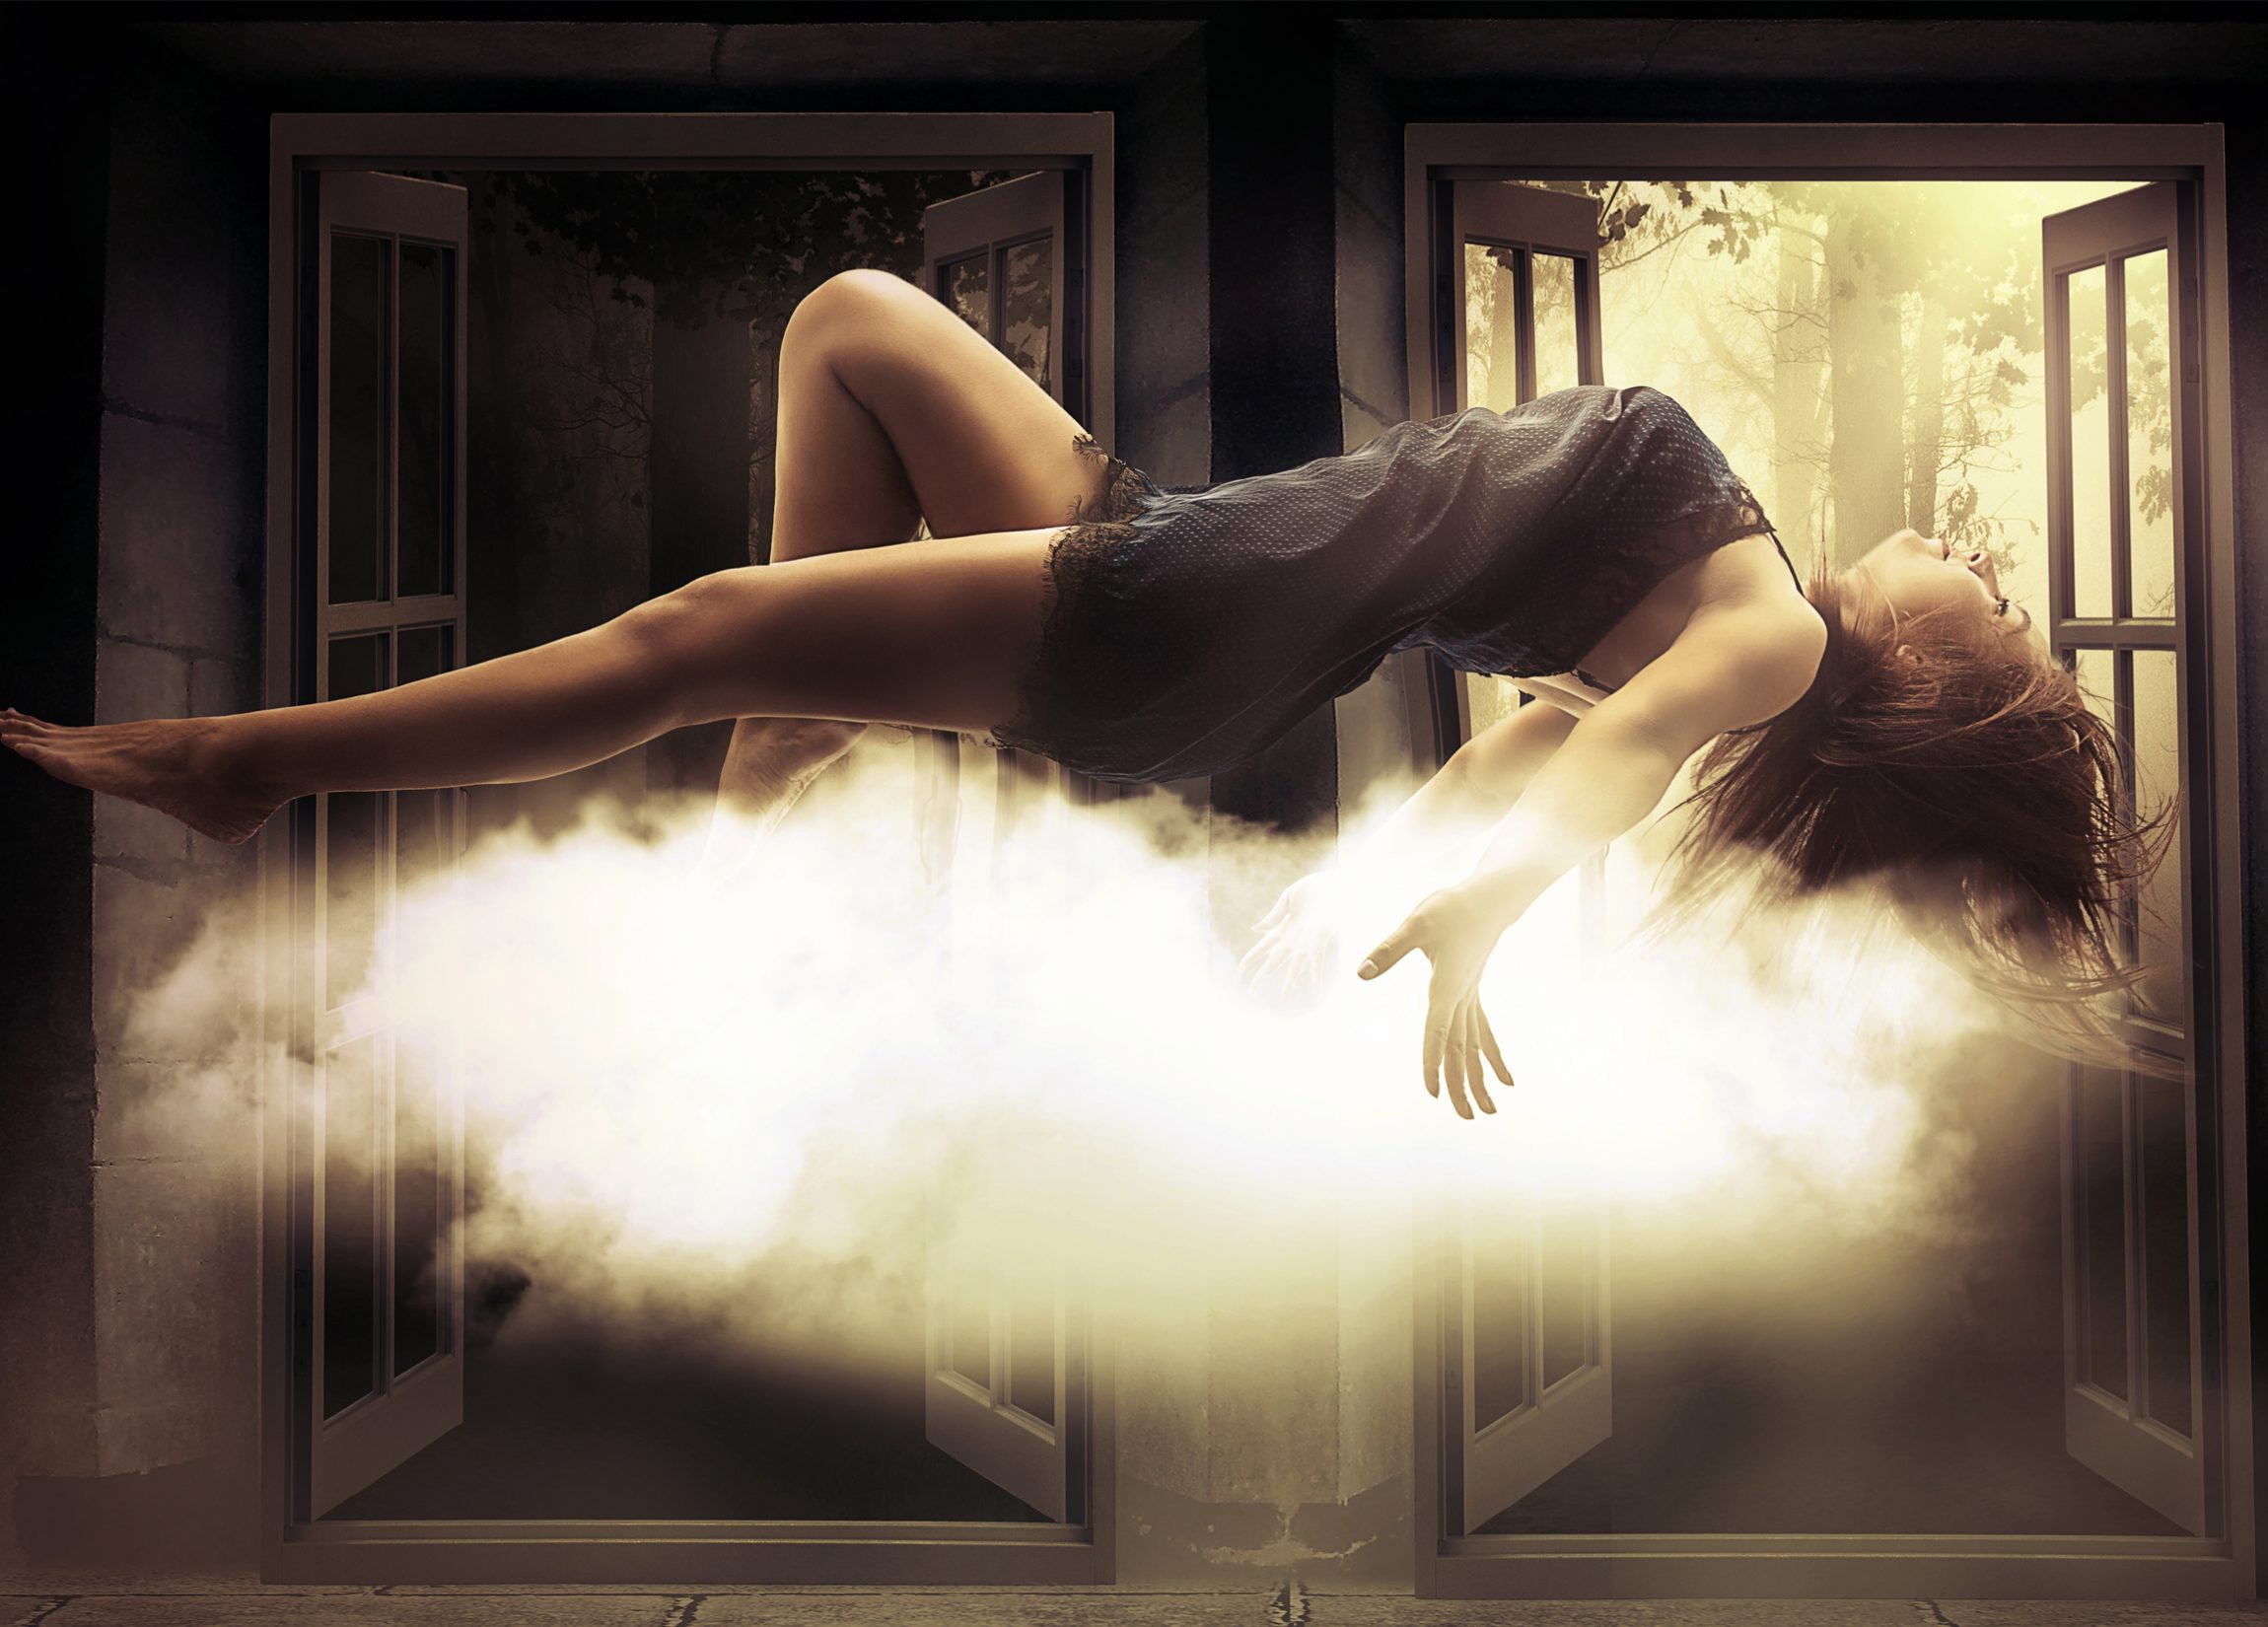 Astral Projection Travel Meditation, Out of Body Experience. During deep sleep at night, for most people the human soul leaves the body into the astral plane.